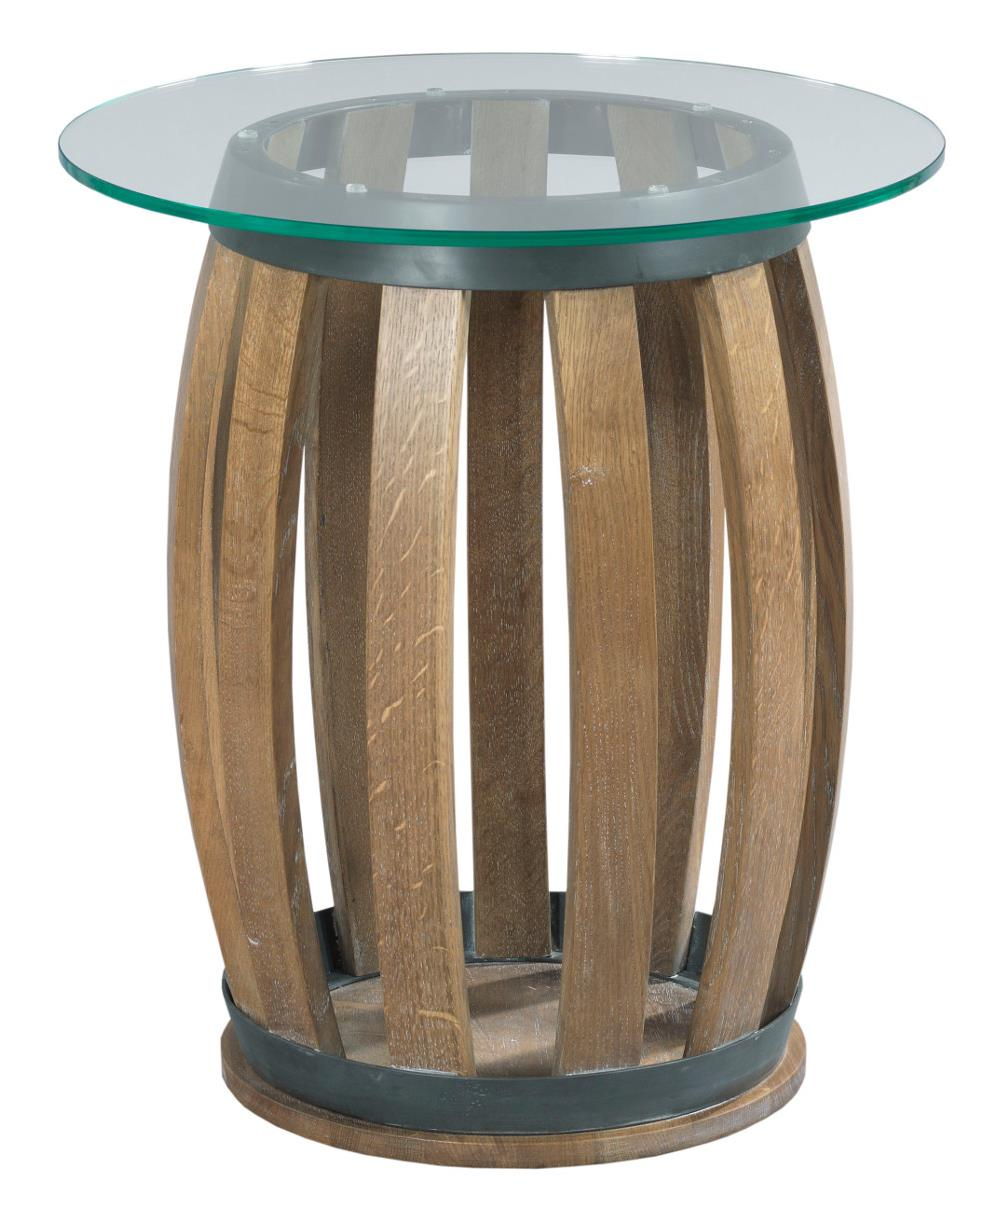 accent table ideas probably terrific best the rustic teal wine barrel with tempered glass top kincaid products furniture color stone ridge end diy cocktail broyhill vantana kohls